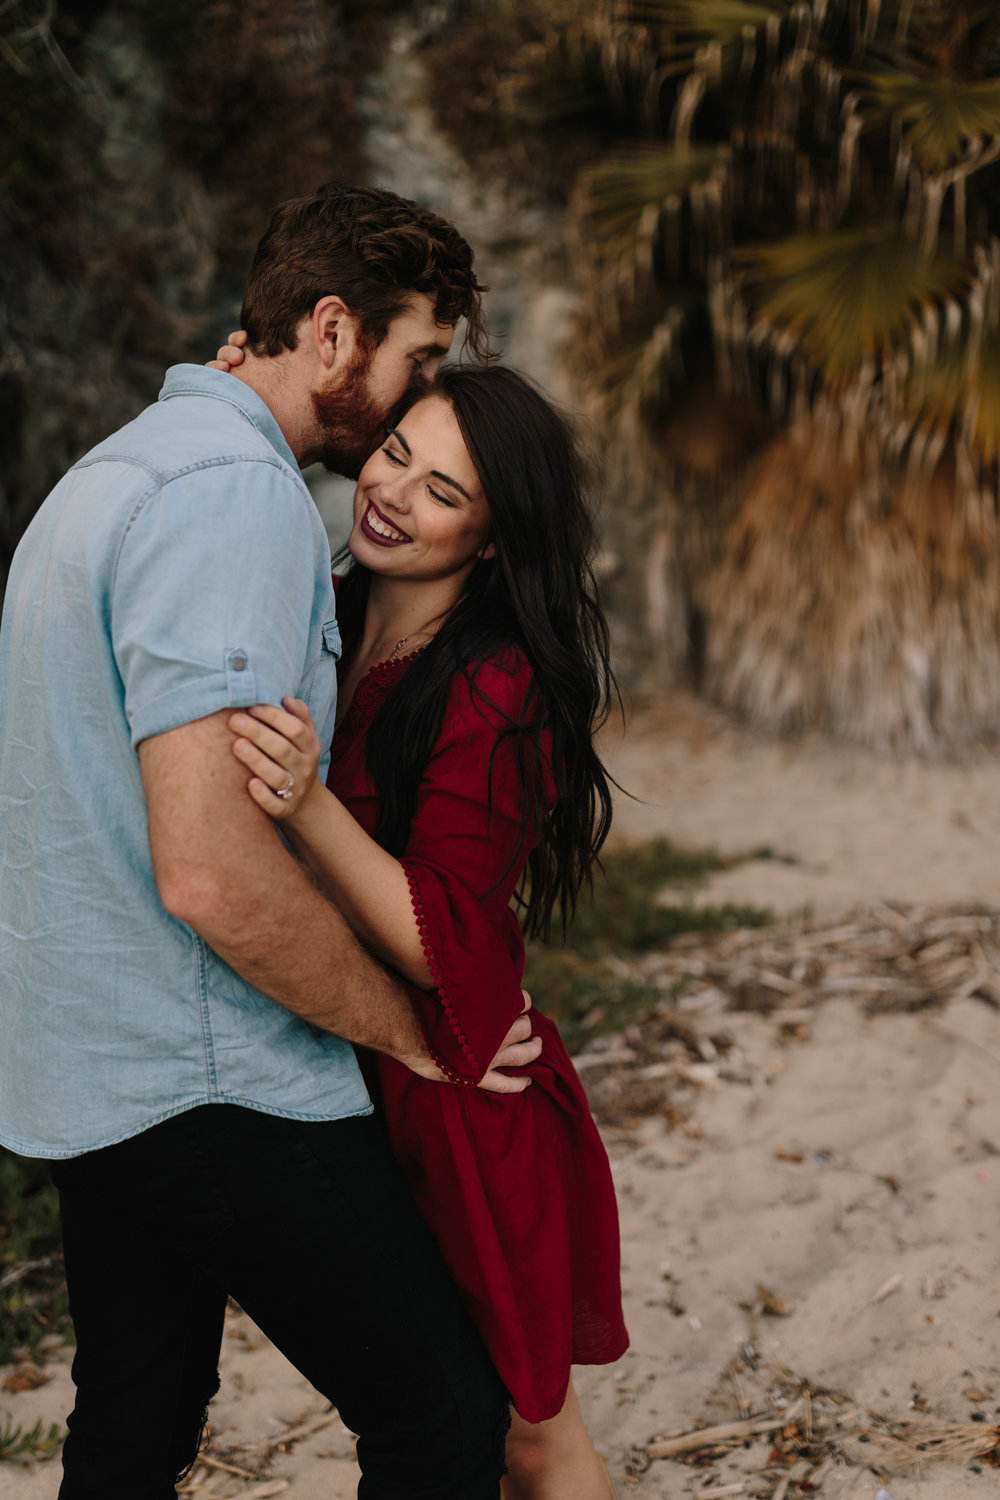 alyssa barletter photography laguna beach california anniversary engagement wedding photographer sunset-12.jpg